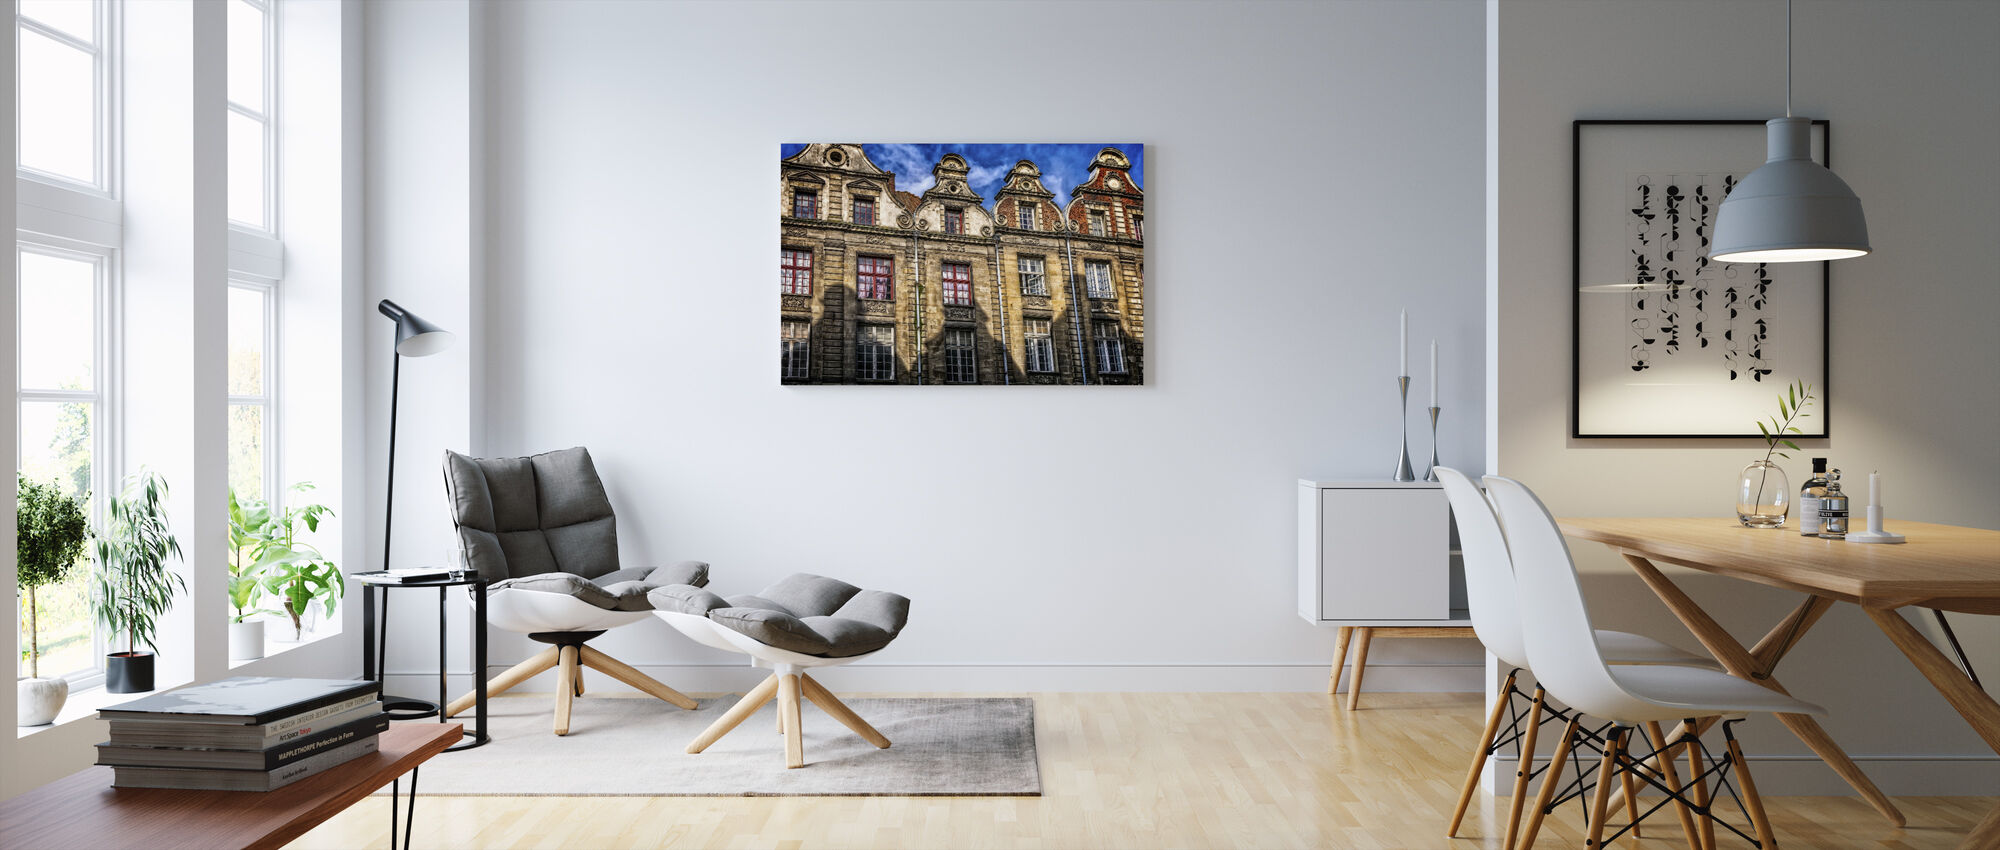 House Facade - Canvas print - Living Room